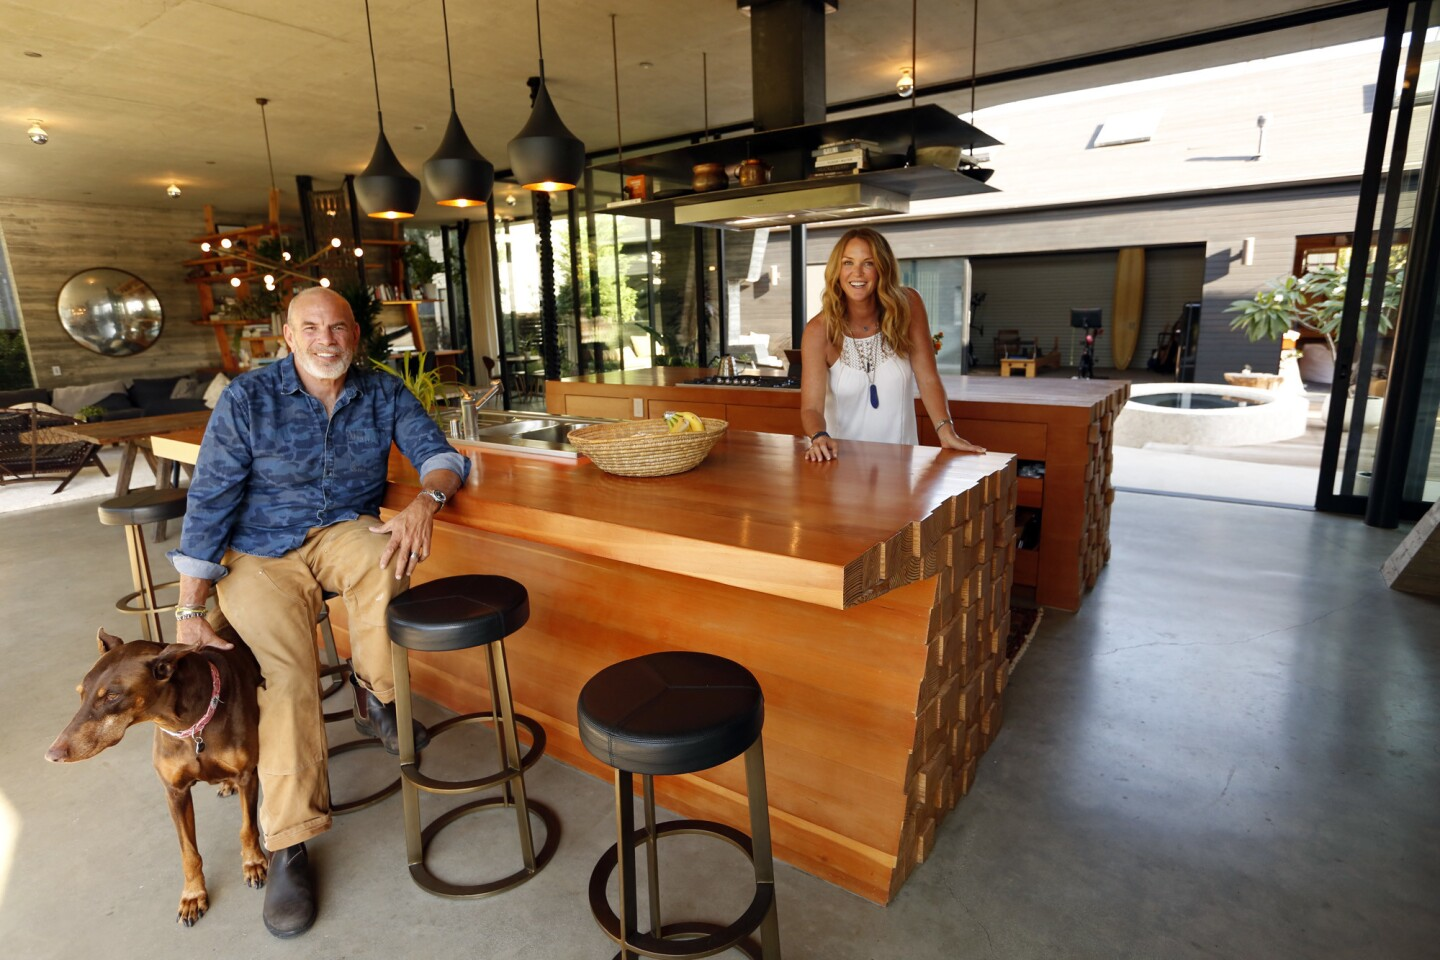 Paul Hibler, his wife, Tiffany Rochelle, and their dog, Maya, spend time in the kitchen of their Venice home that was designed by architect Kulapat Yantrasast of Why. (Yantrasast recently completed the Marciano Art Foundation on Wilshire Boulevard.)